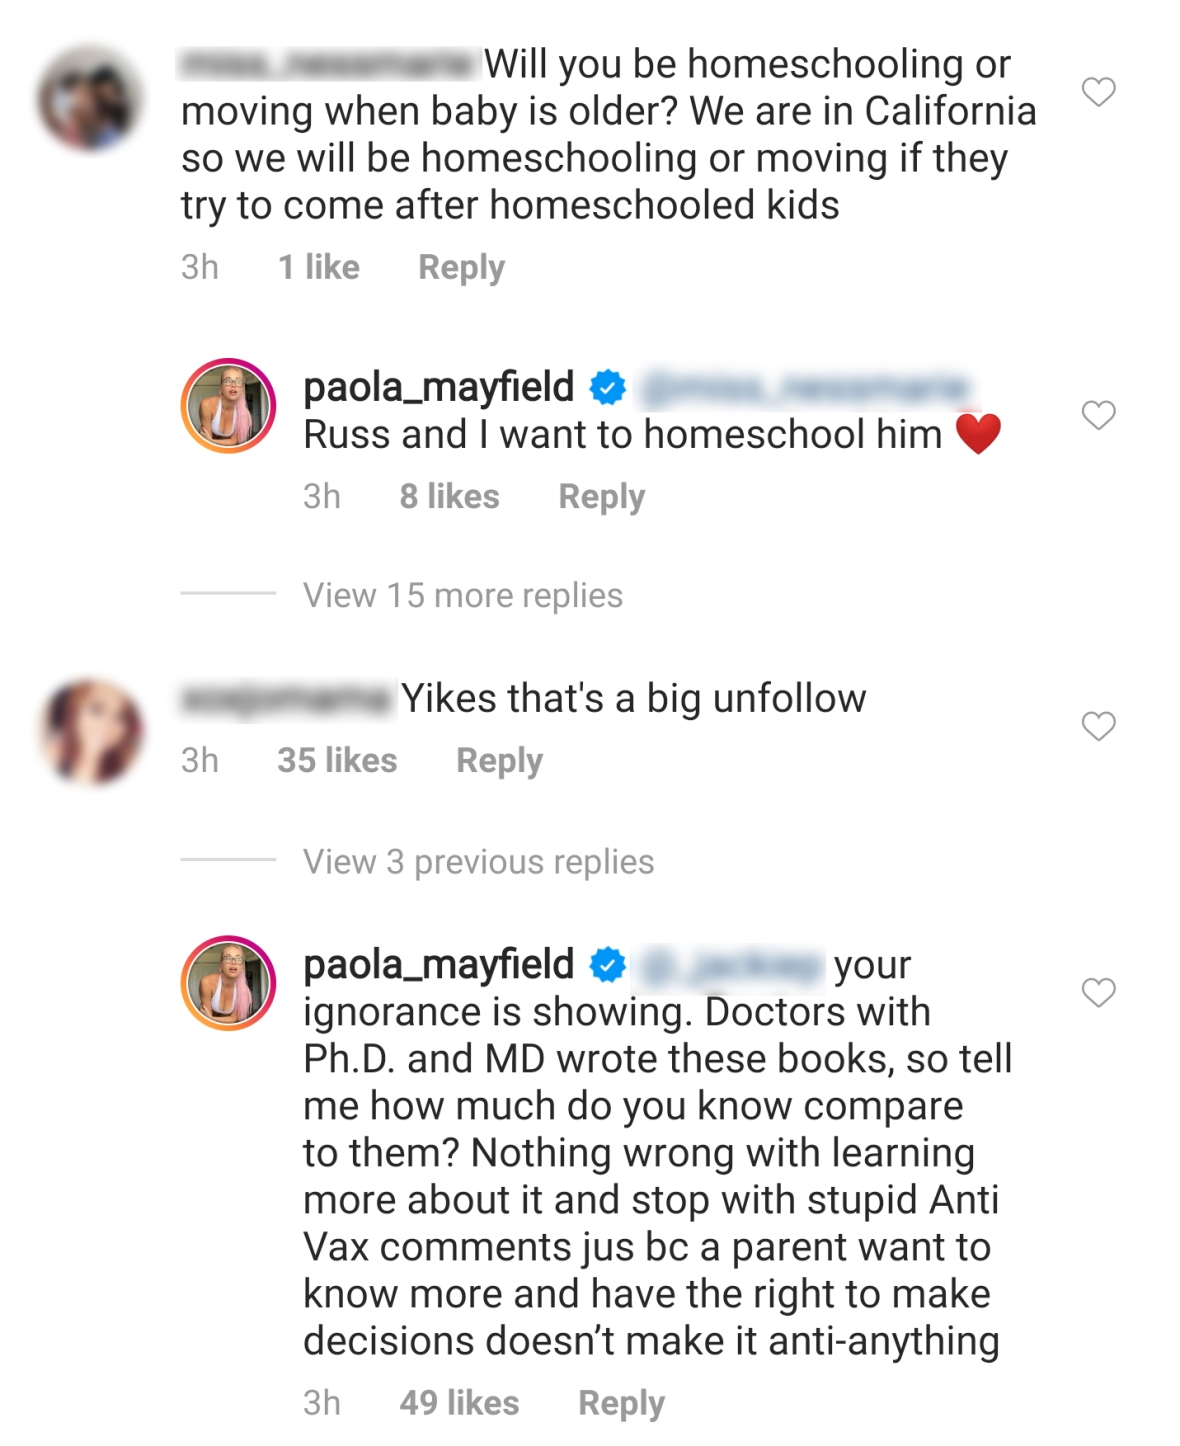 Paola Mayfield Reveals She Wants to 'Homeschool' Axel and Claps Back at Anti-Vax Claims